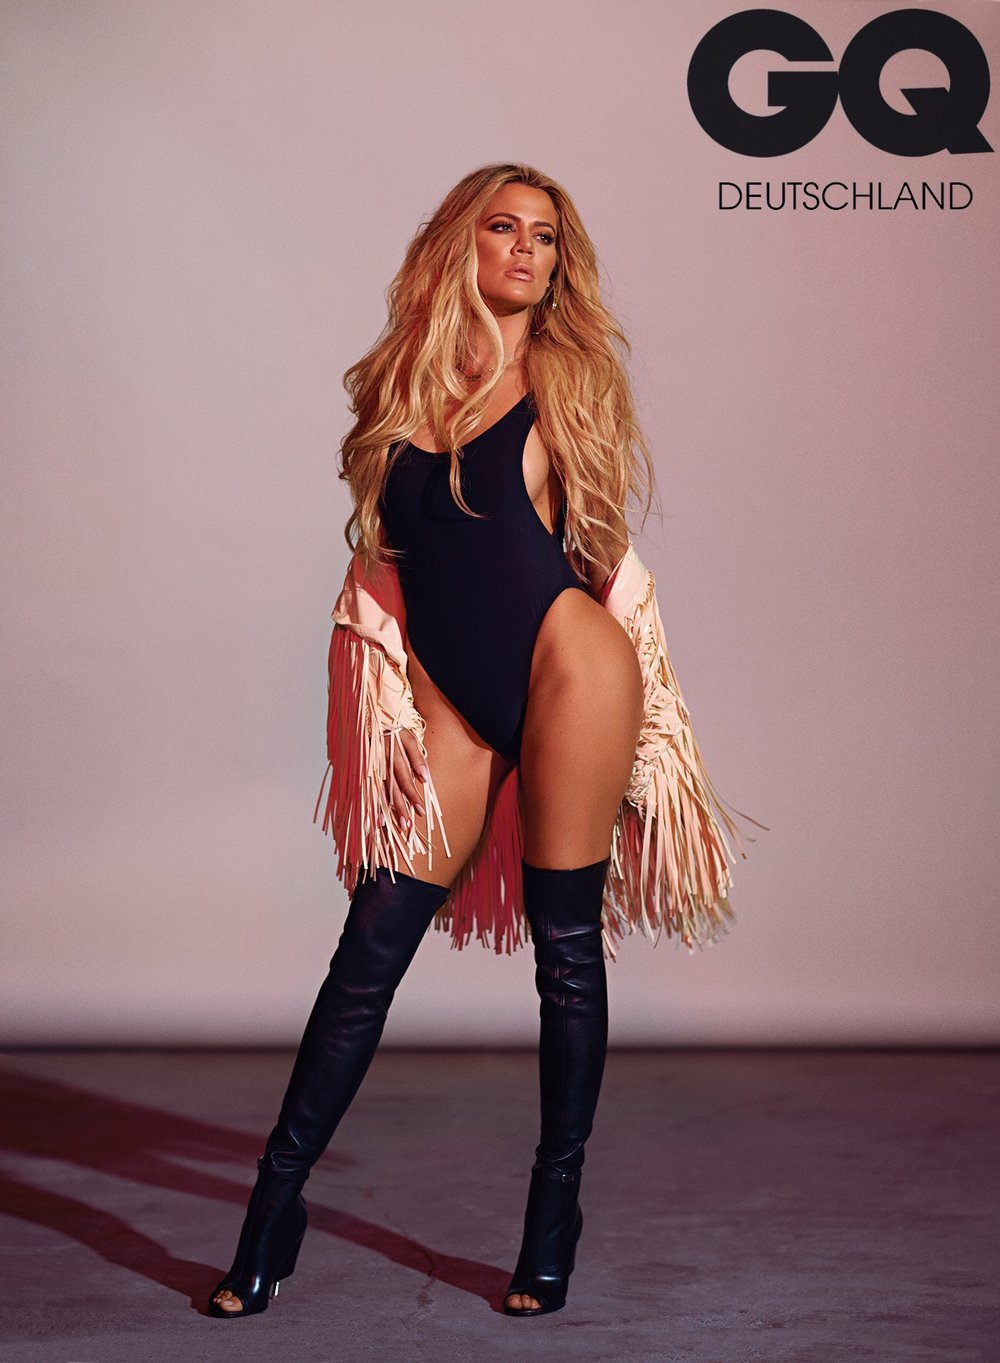 Khloe Kardashian GQ Germany